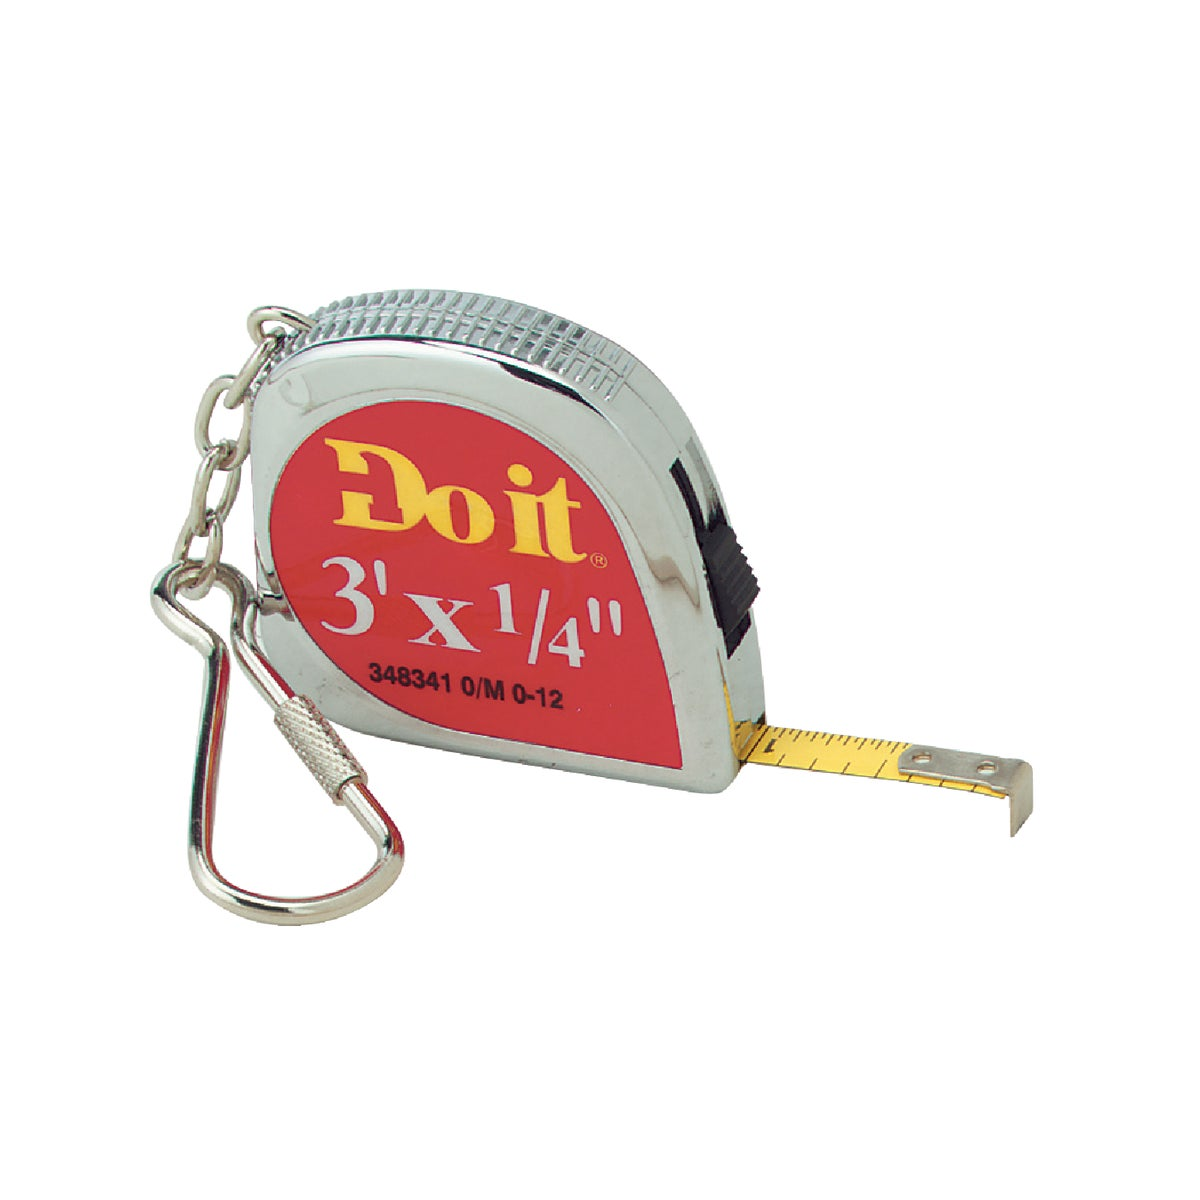 3' KEY RING TAPE RULE - 348341 by Do it Best